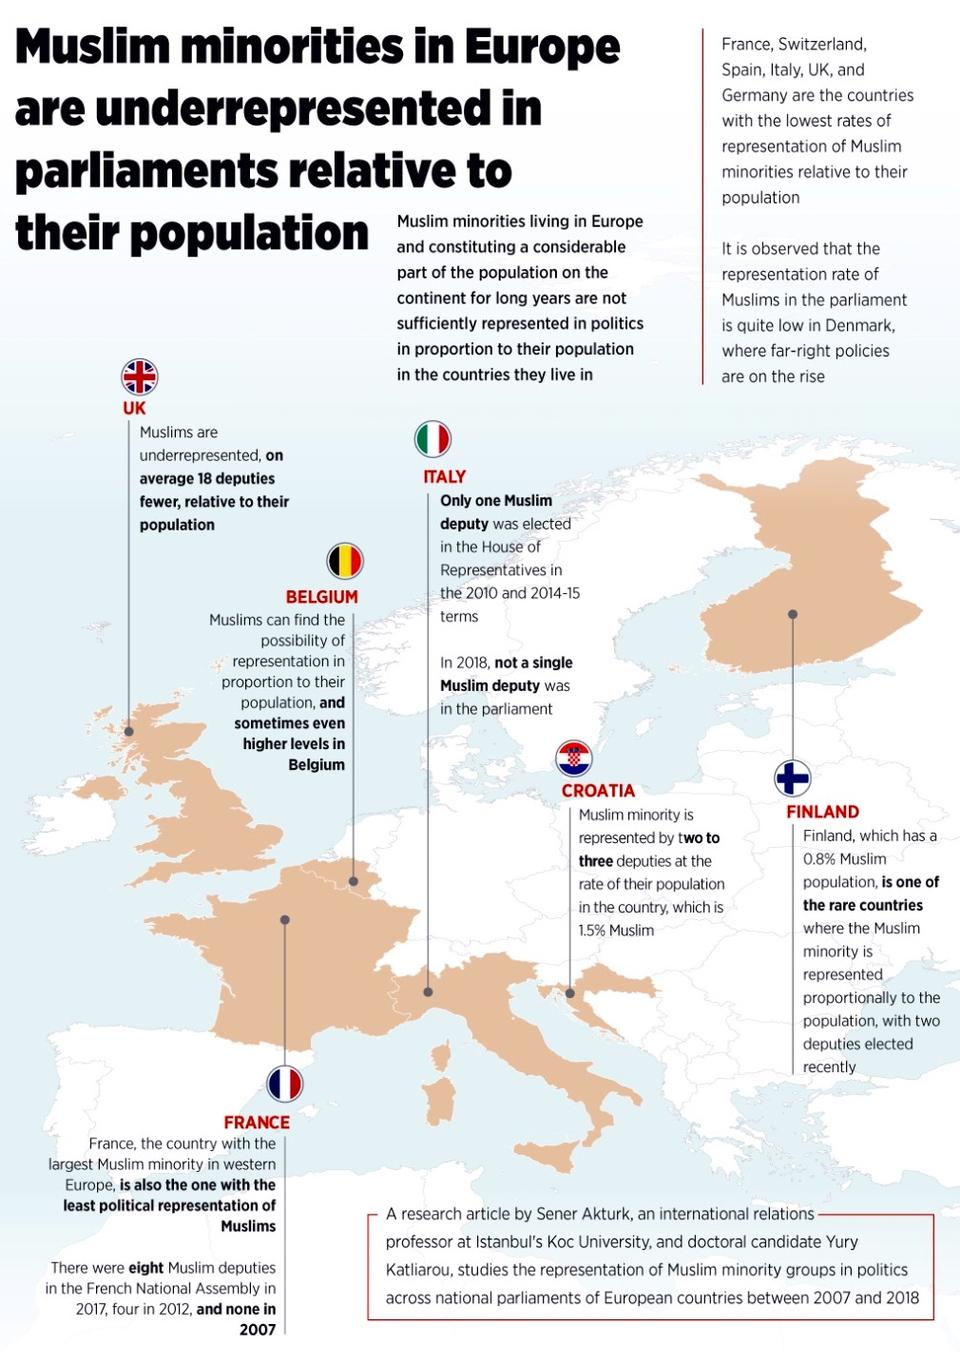 Map of European democracies with political representation of Muslims